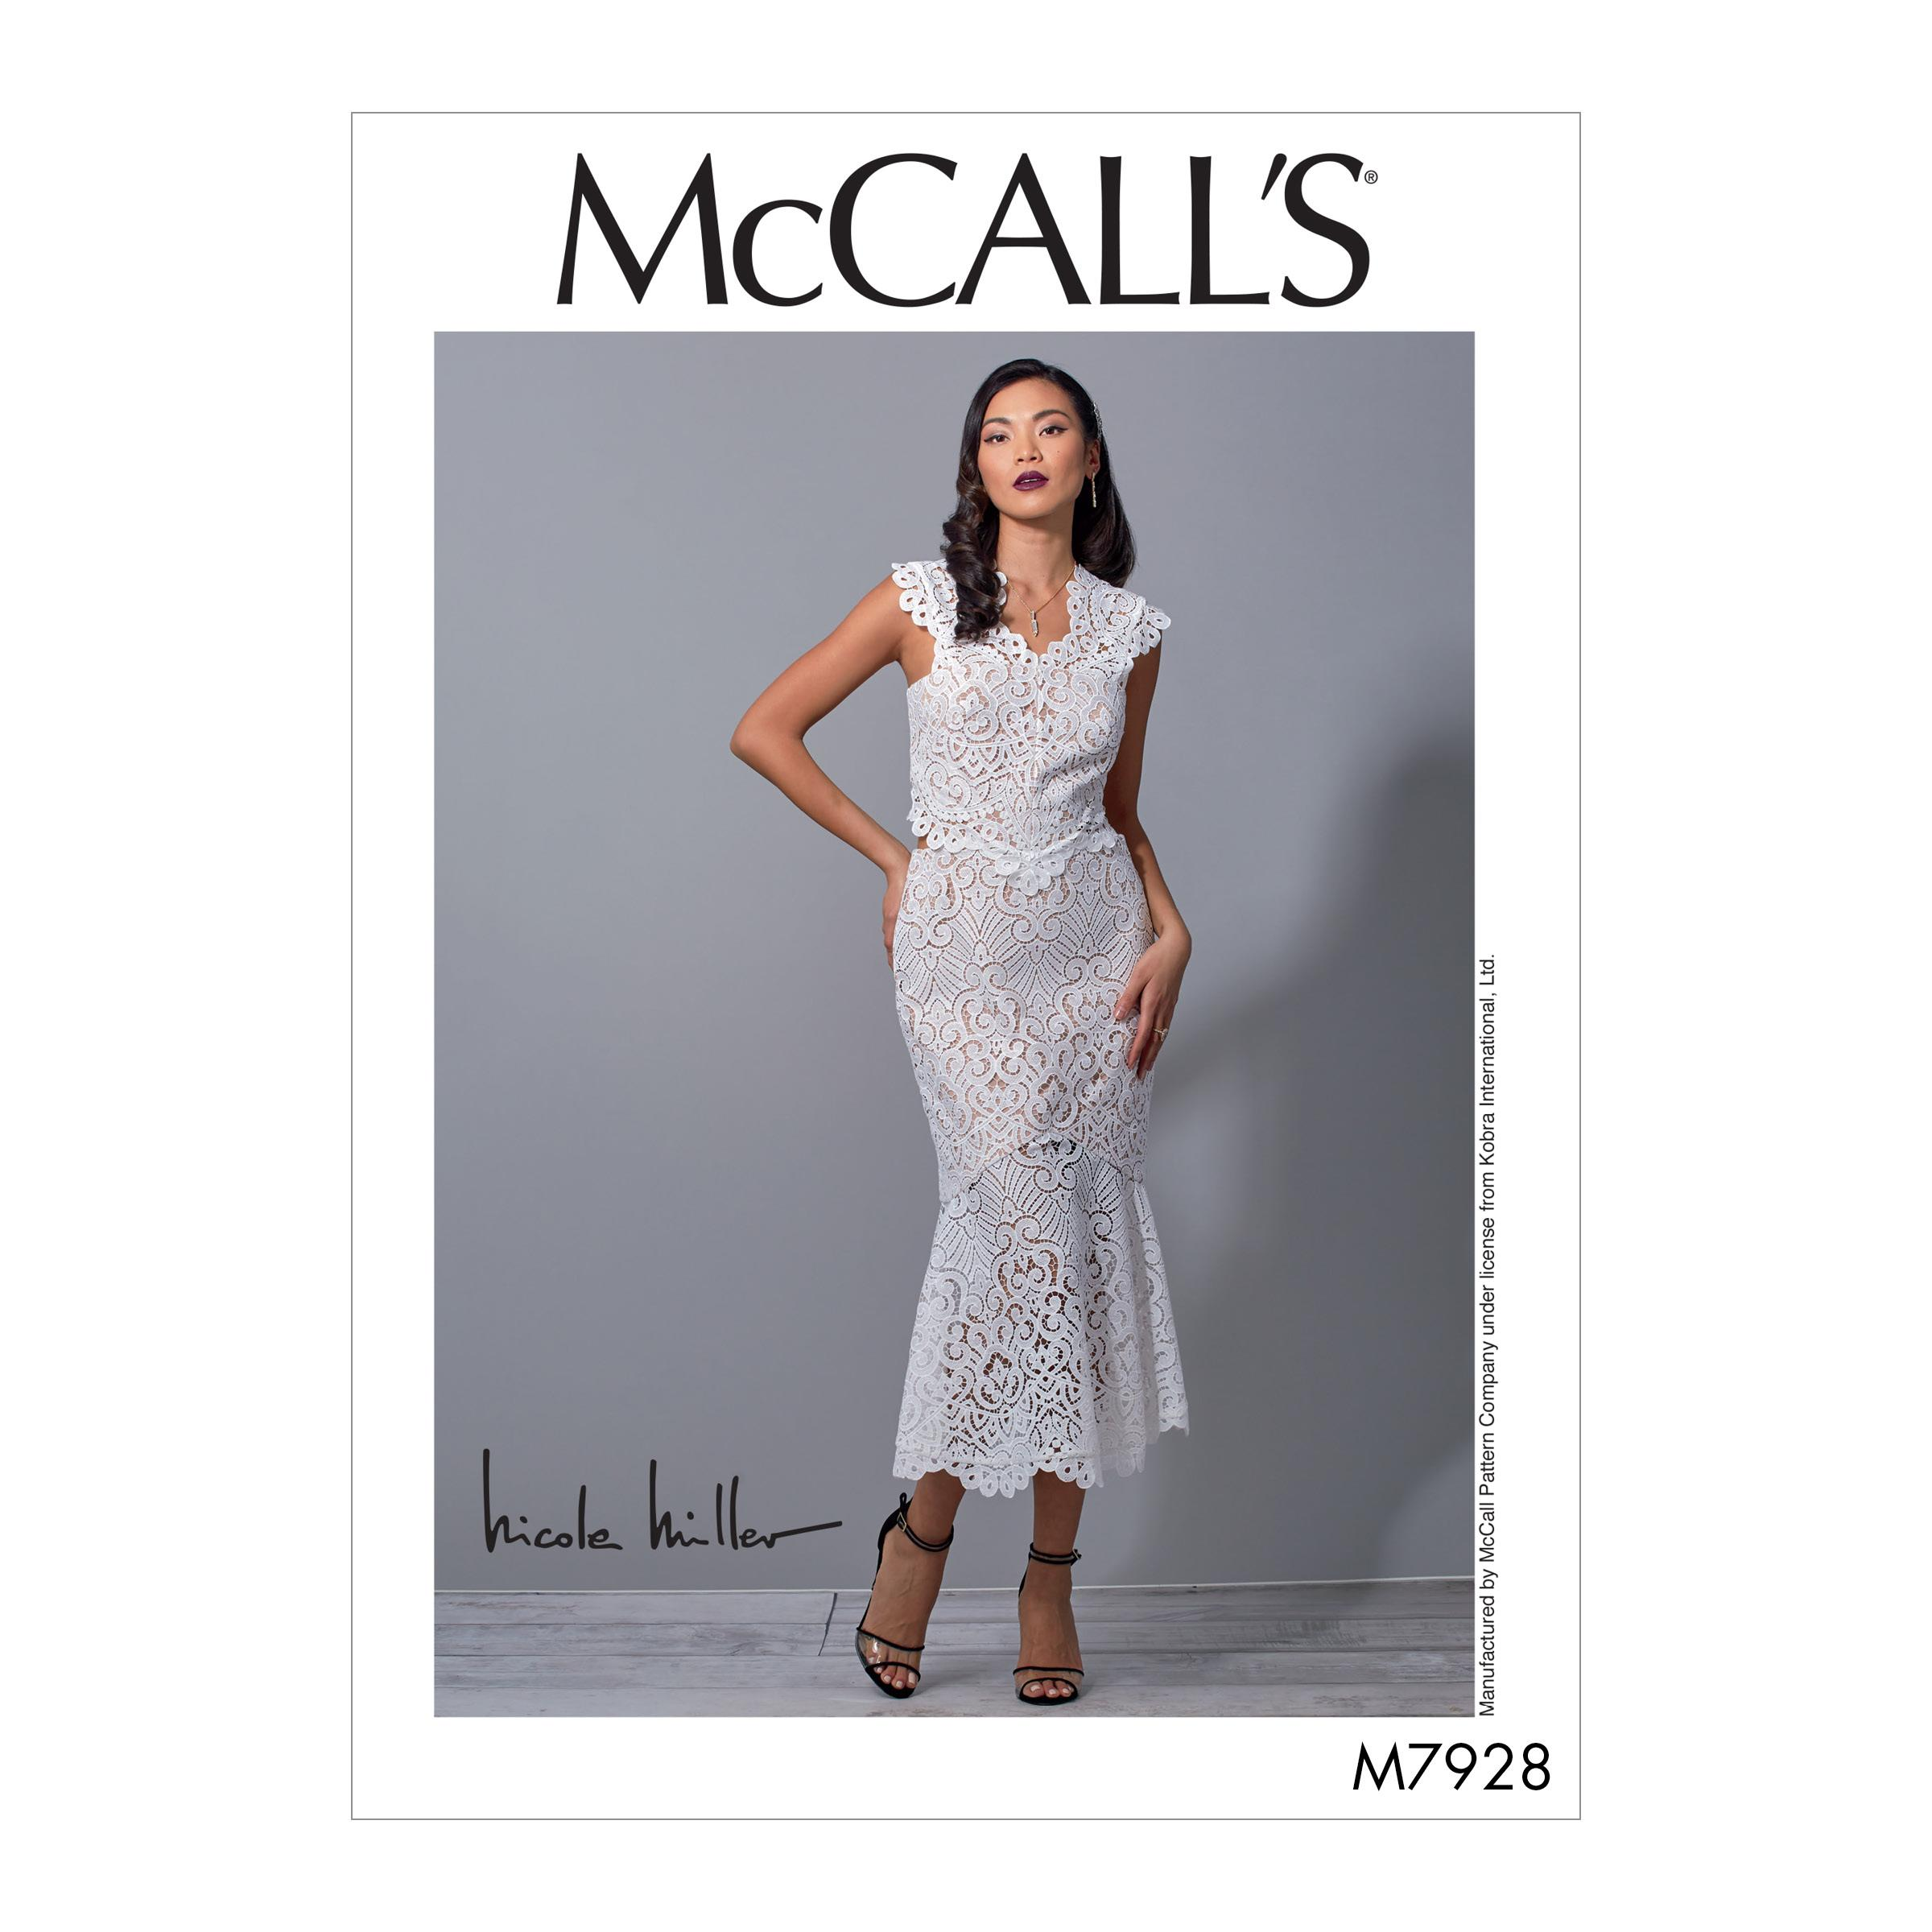 McCalls M7928 Misses Dresses, Misses Prom, Evening & Bridal